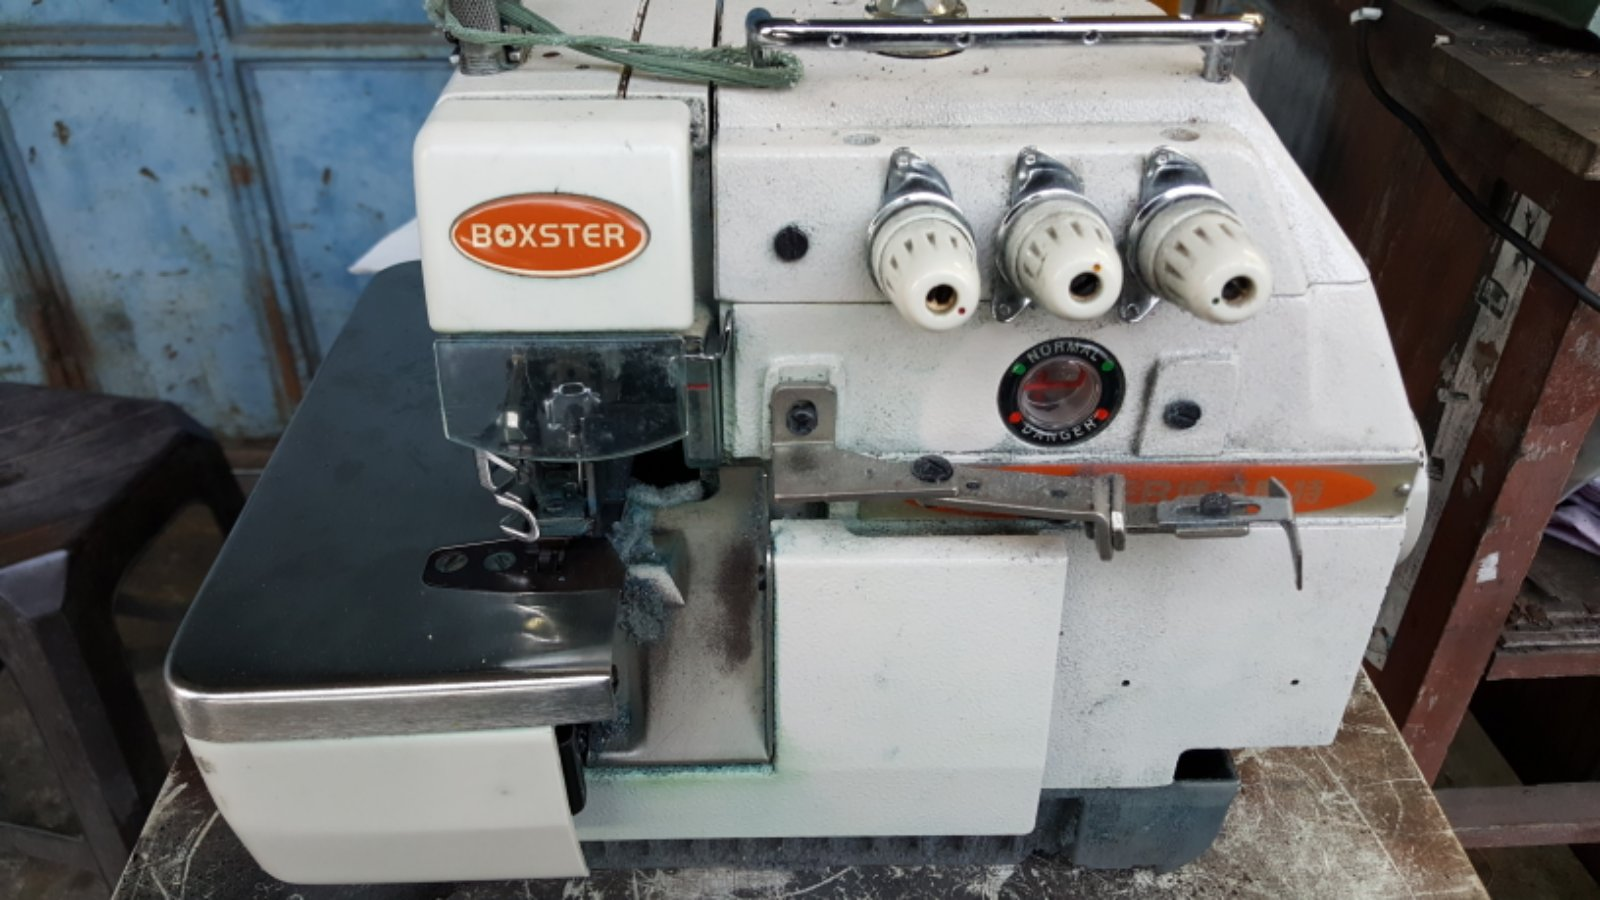 Repai Boxster Overlock Sewing Machine!